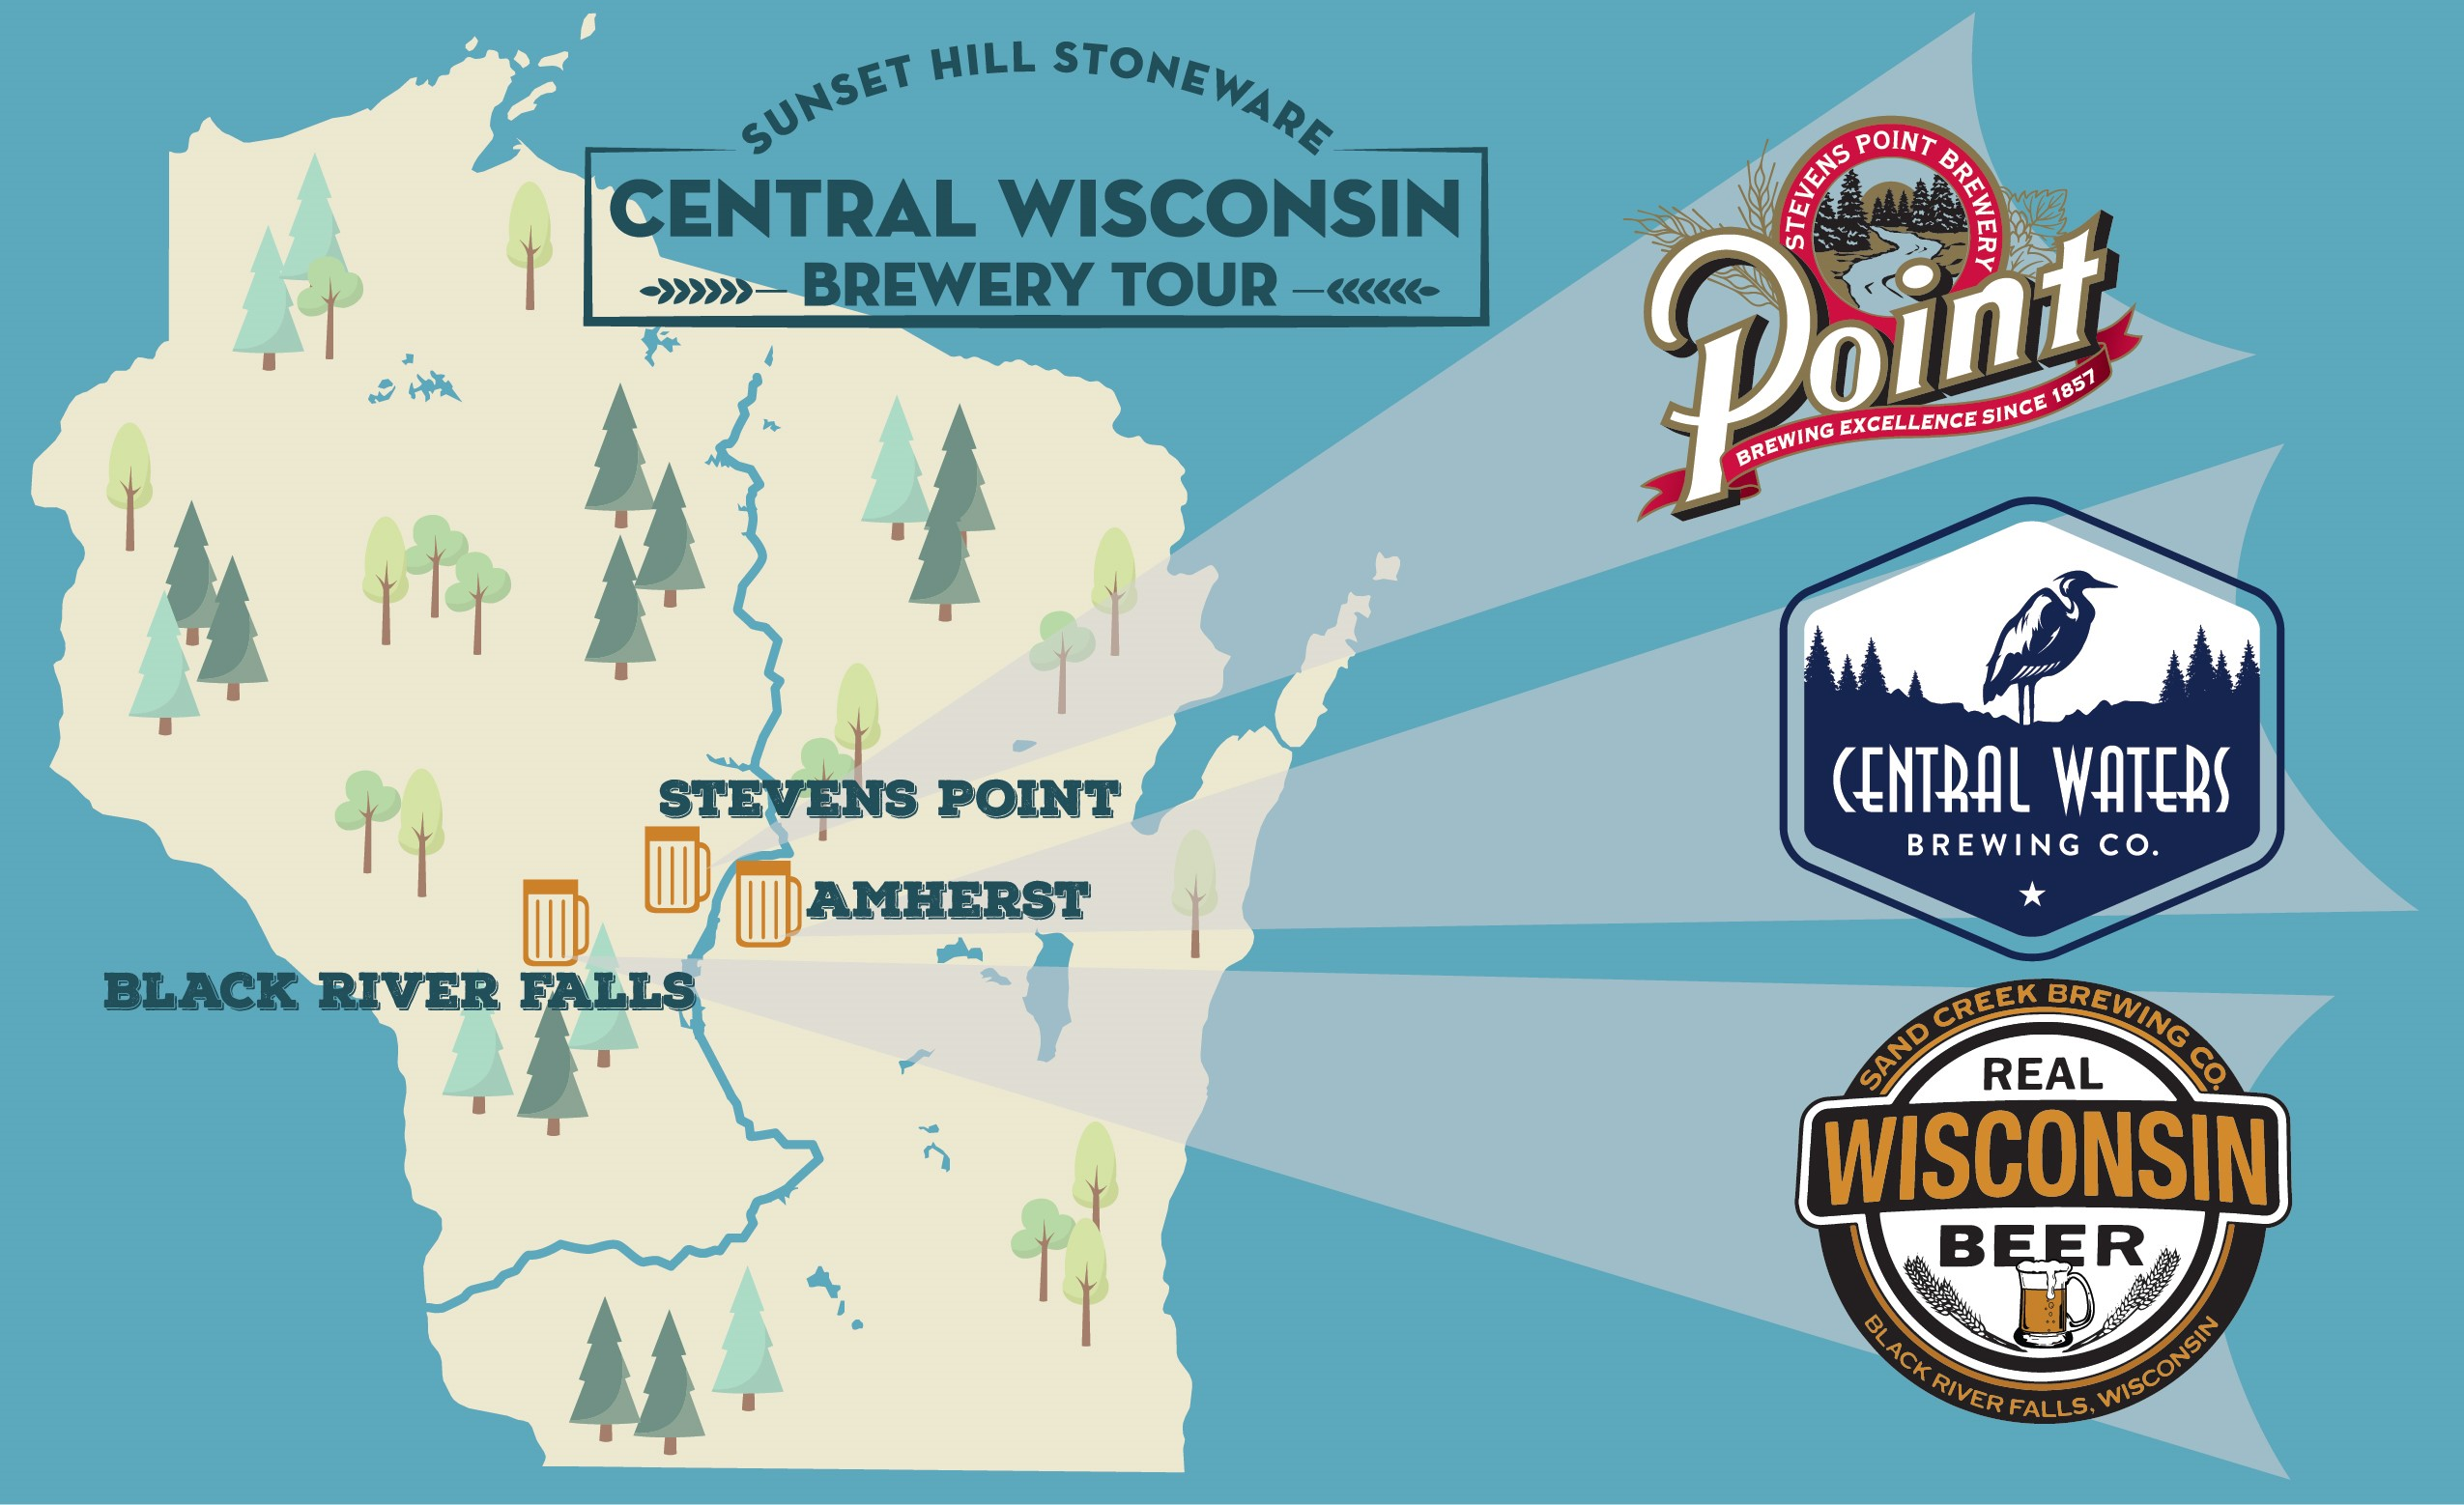 Brew Tour: Where to Find Sunset Hill Stoneware in Central Wisconsin